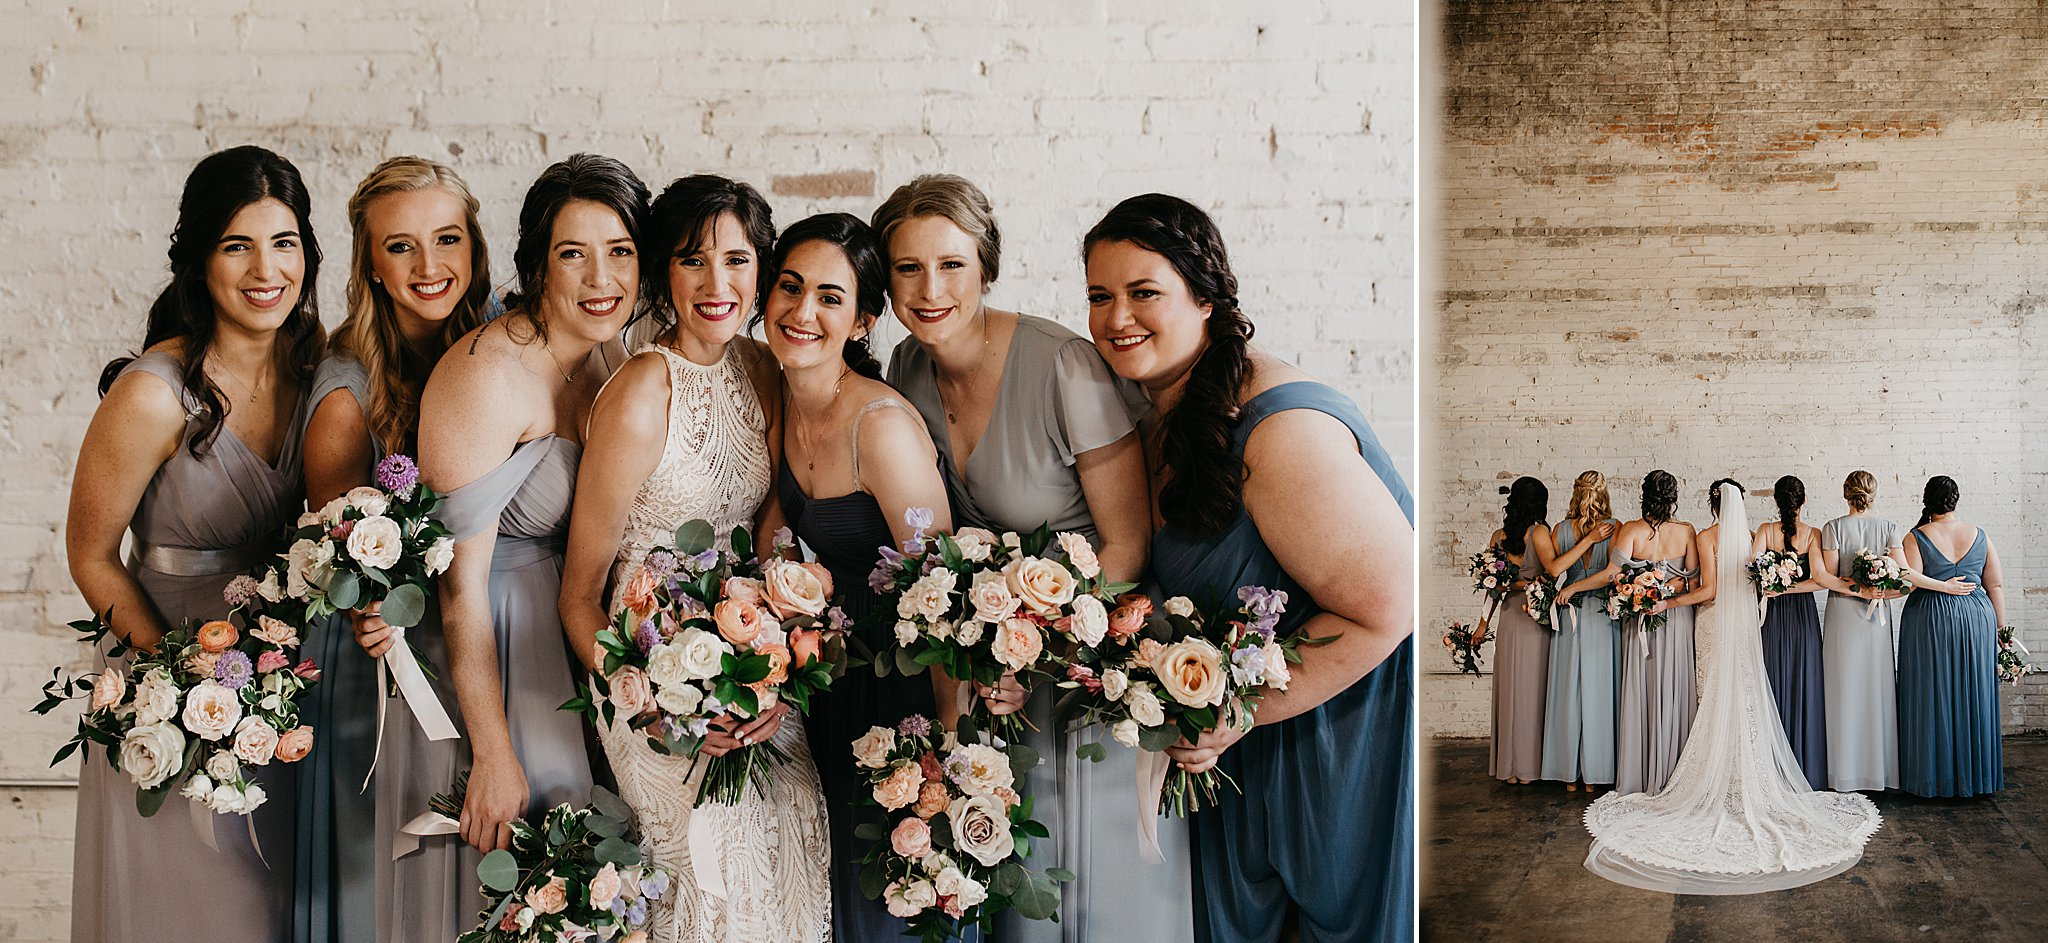 Wilderlove Co_Wedding Photographer_Industrial Wedding_Jewish Wedding_Dallas Texas Wedding_Brake & Clutch Warehouse_North Texas Photographer_0034.jpg